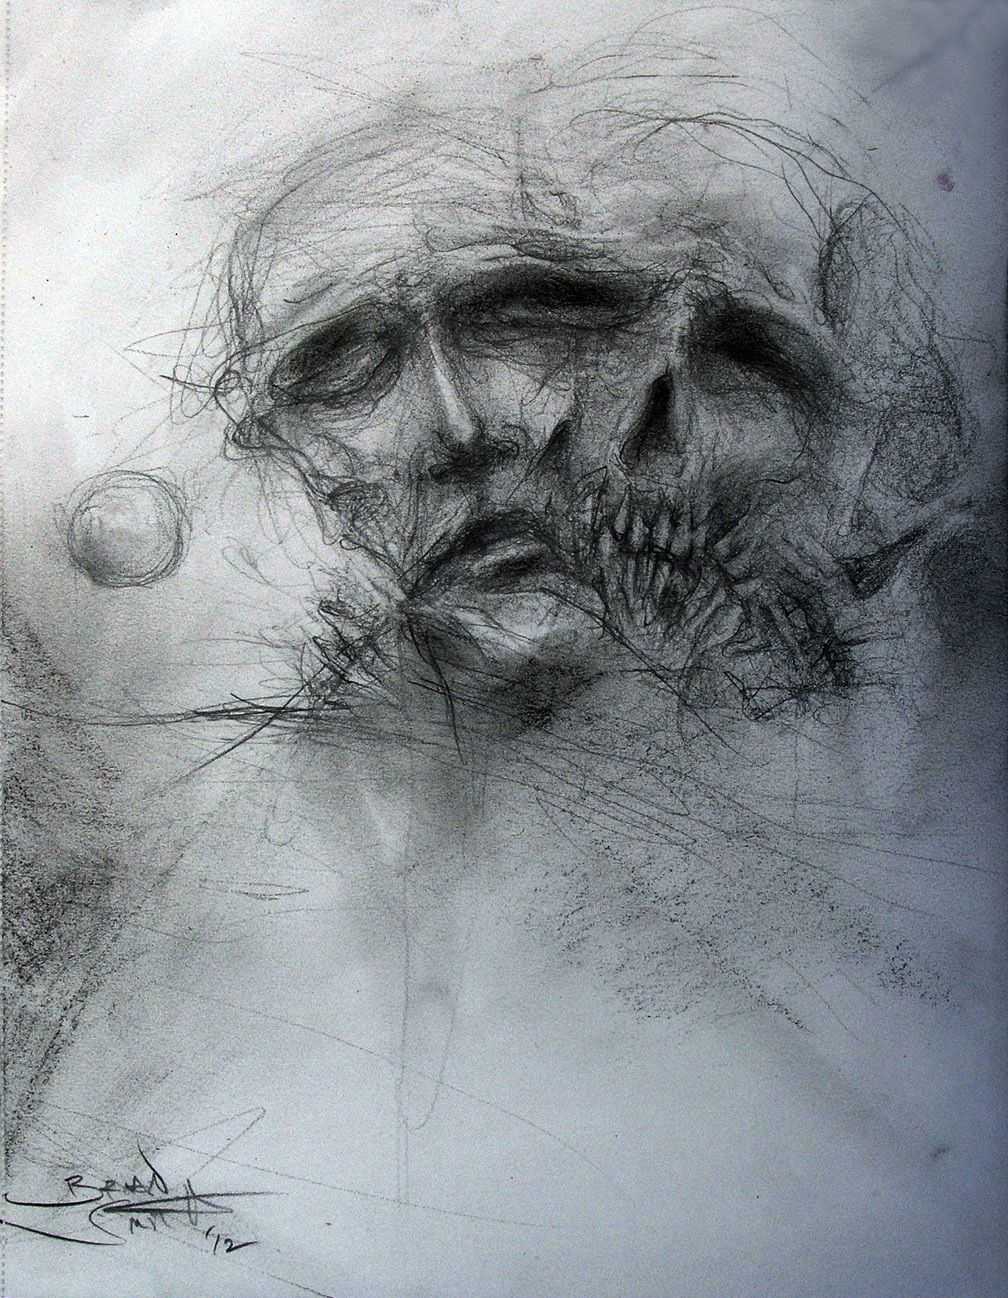 Dark art drawings dark art pencil drawings pencil charcoal on paper